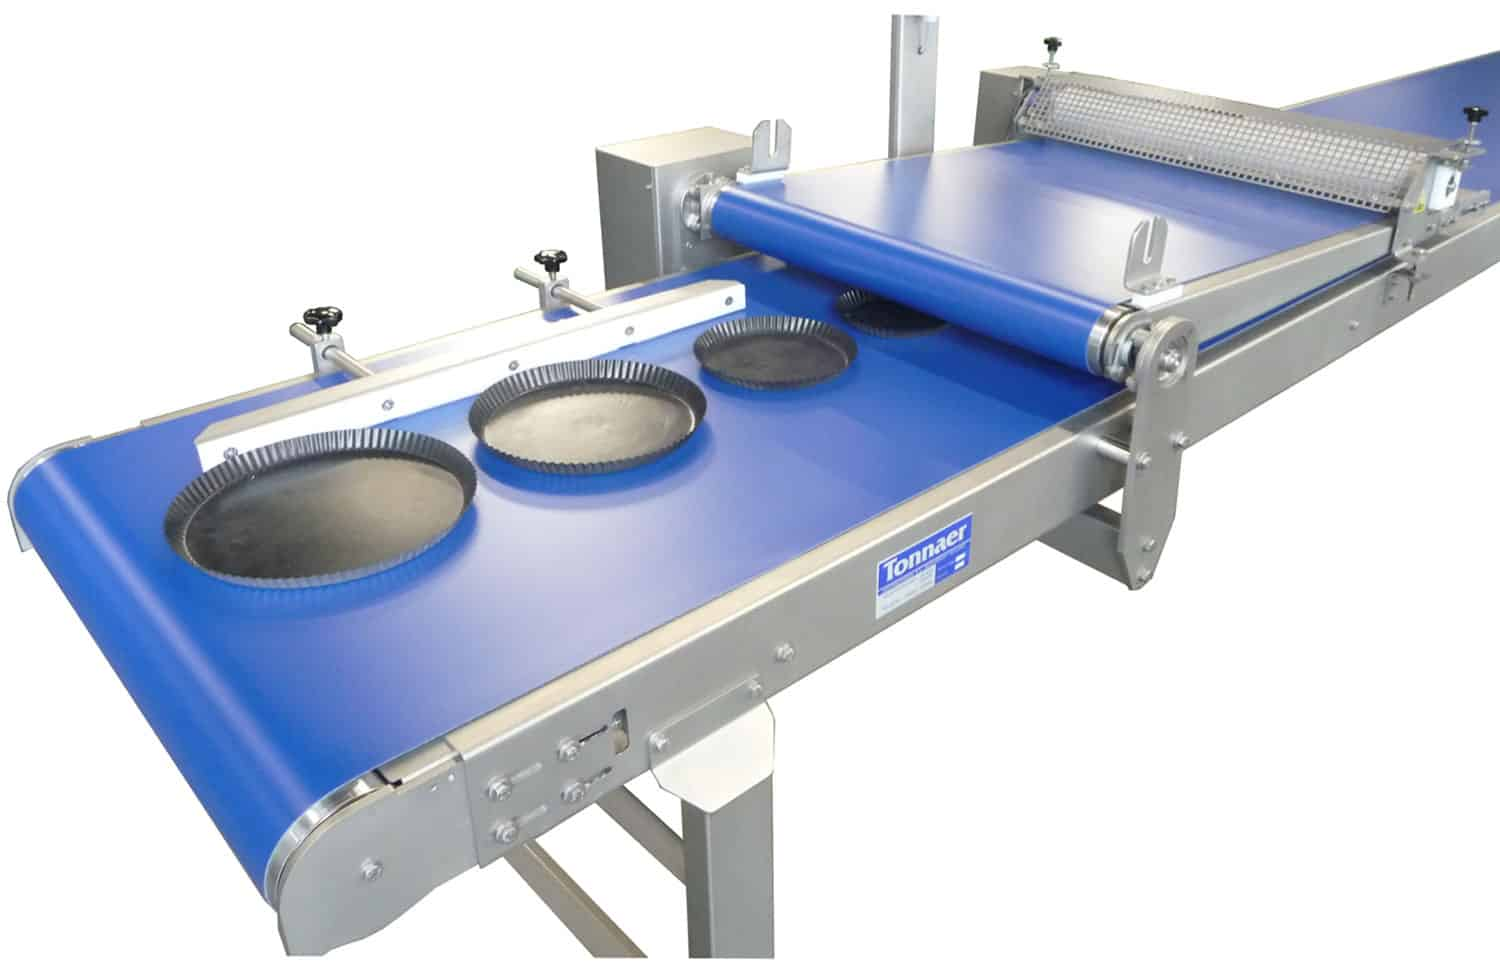 Semi-automatic finishing line 02 Tonnaer Mixing Systems